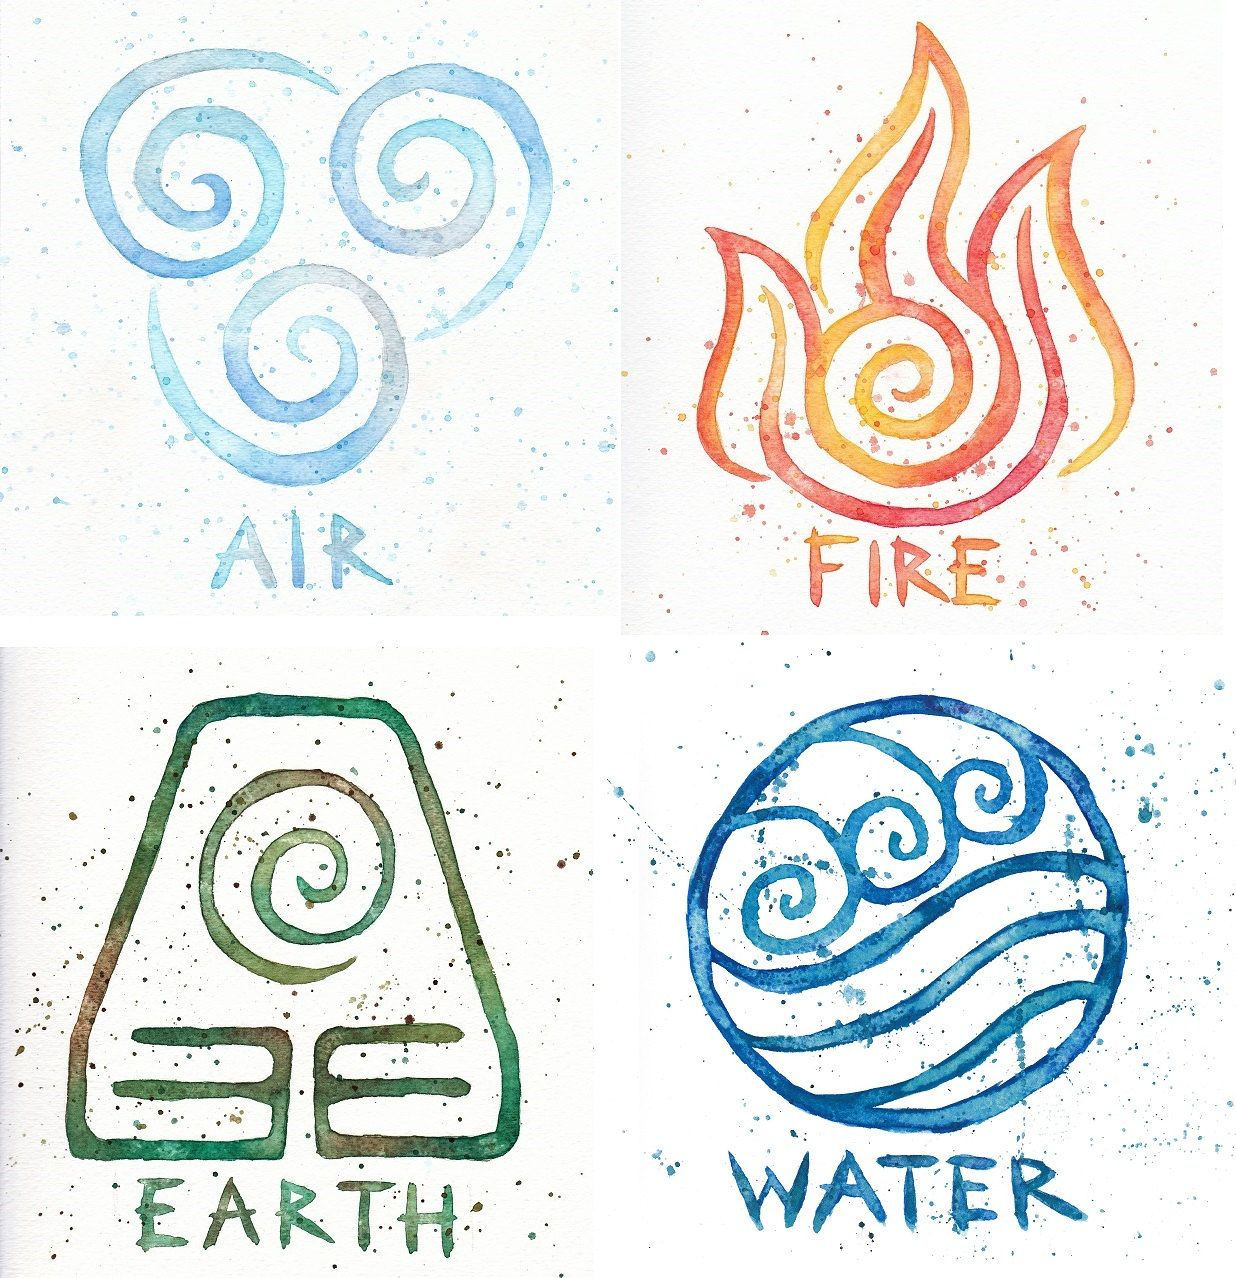 Agua tierra aire fuego smbolos de avatar impresiones water earth air fire avatar symbols prints four watercolor paintings korra avatar the last airbender buycottarizona Gallery